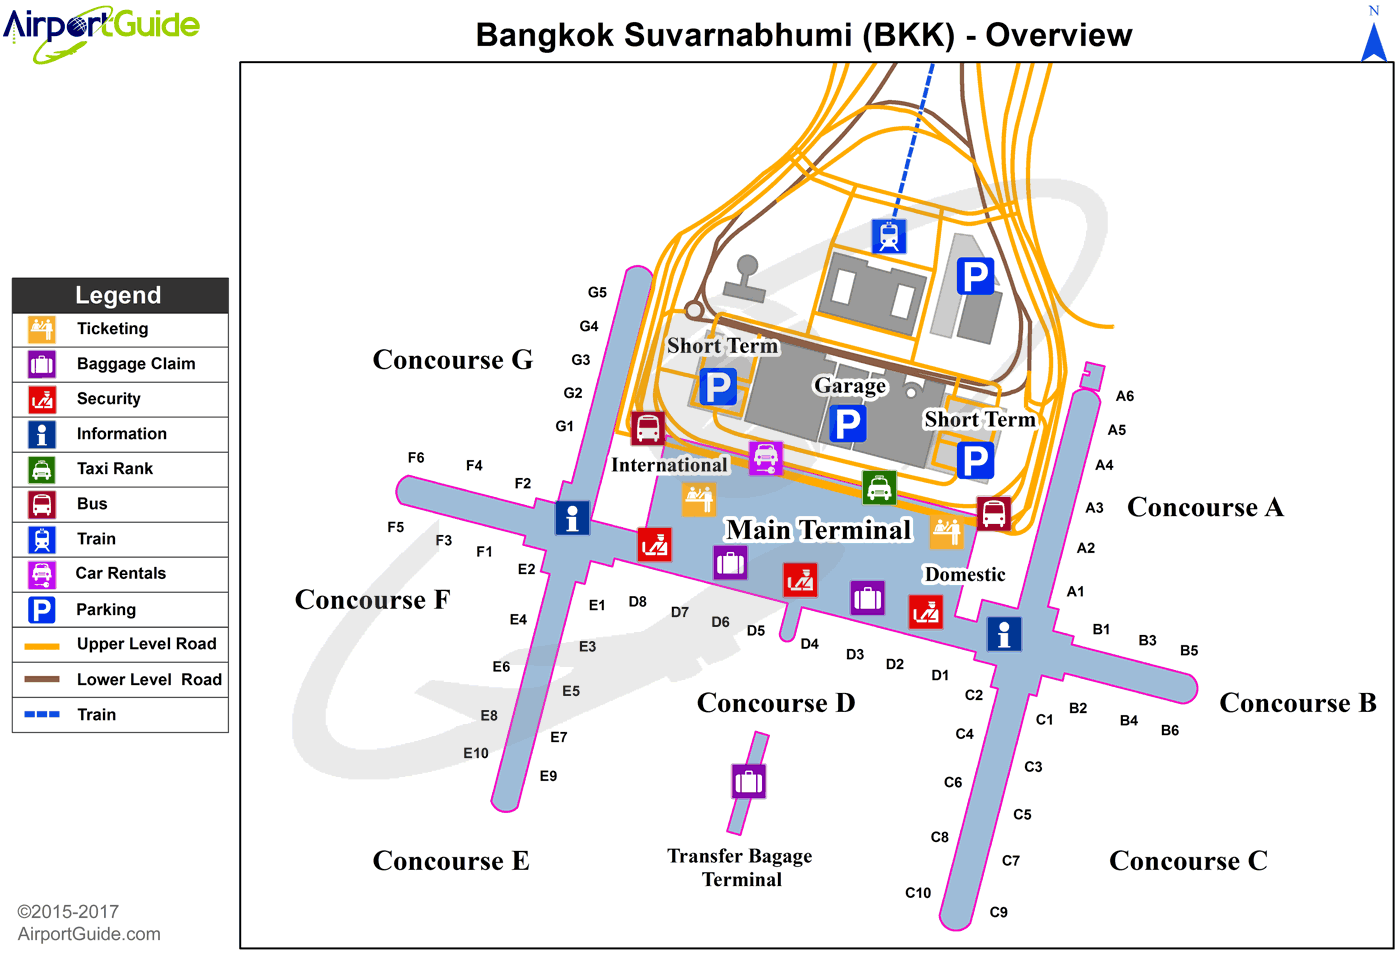 Top 10 Hotels Near Suvarnabhumi International Airport (BKK